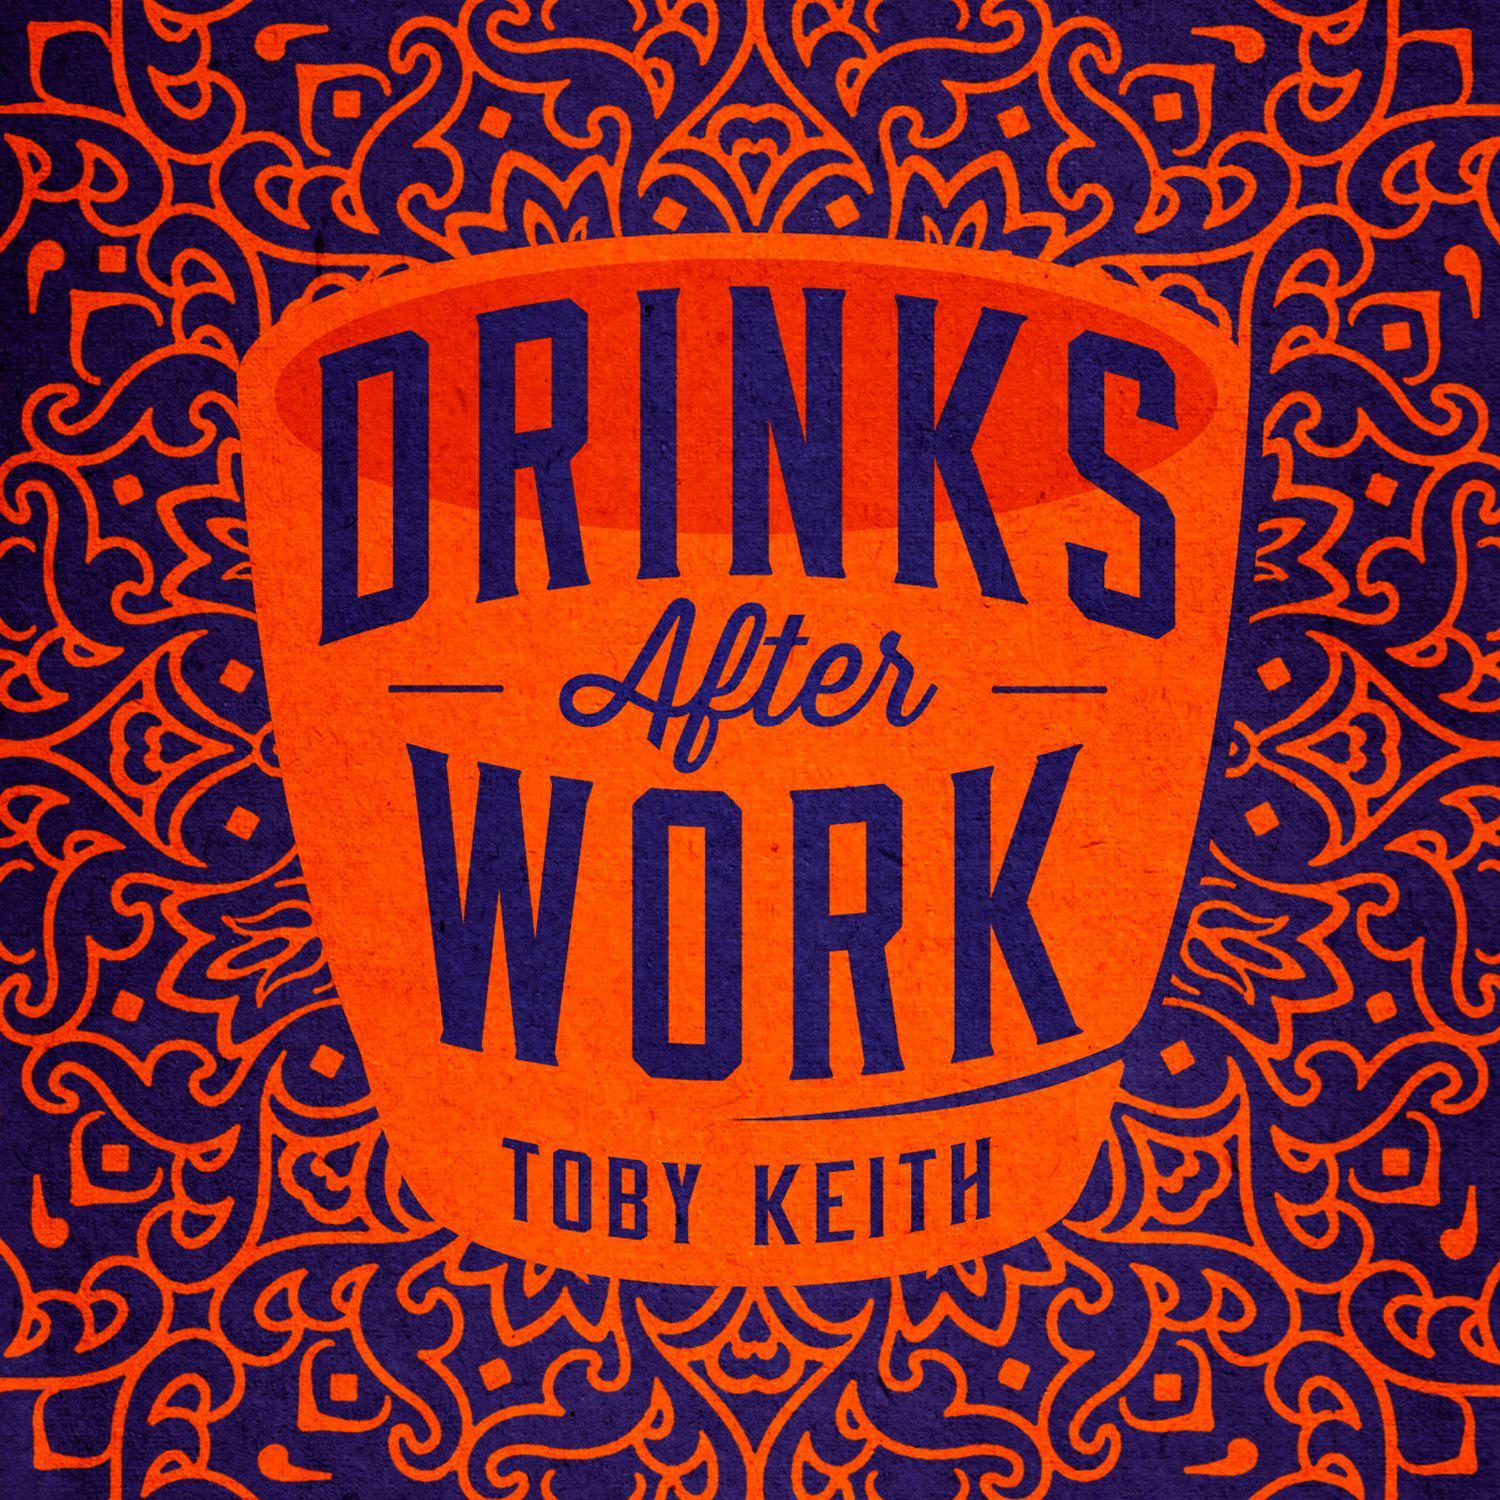 Toby Keith - Drinks After Work [MULTI]